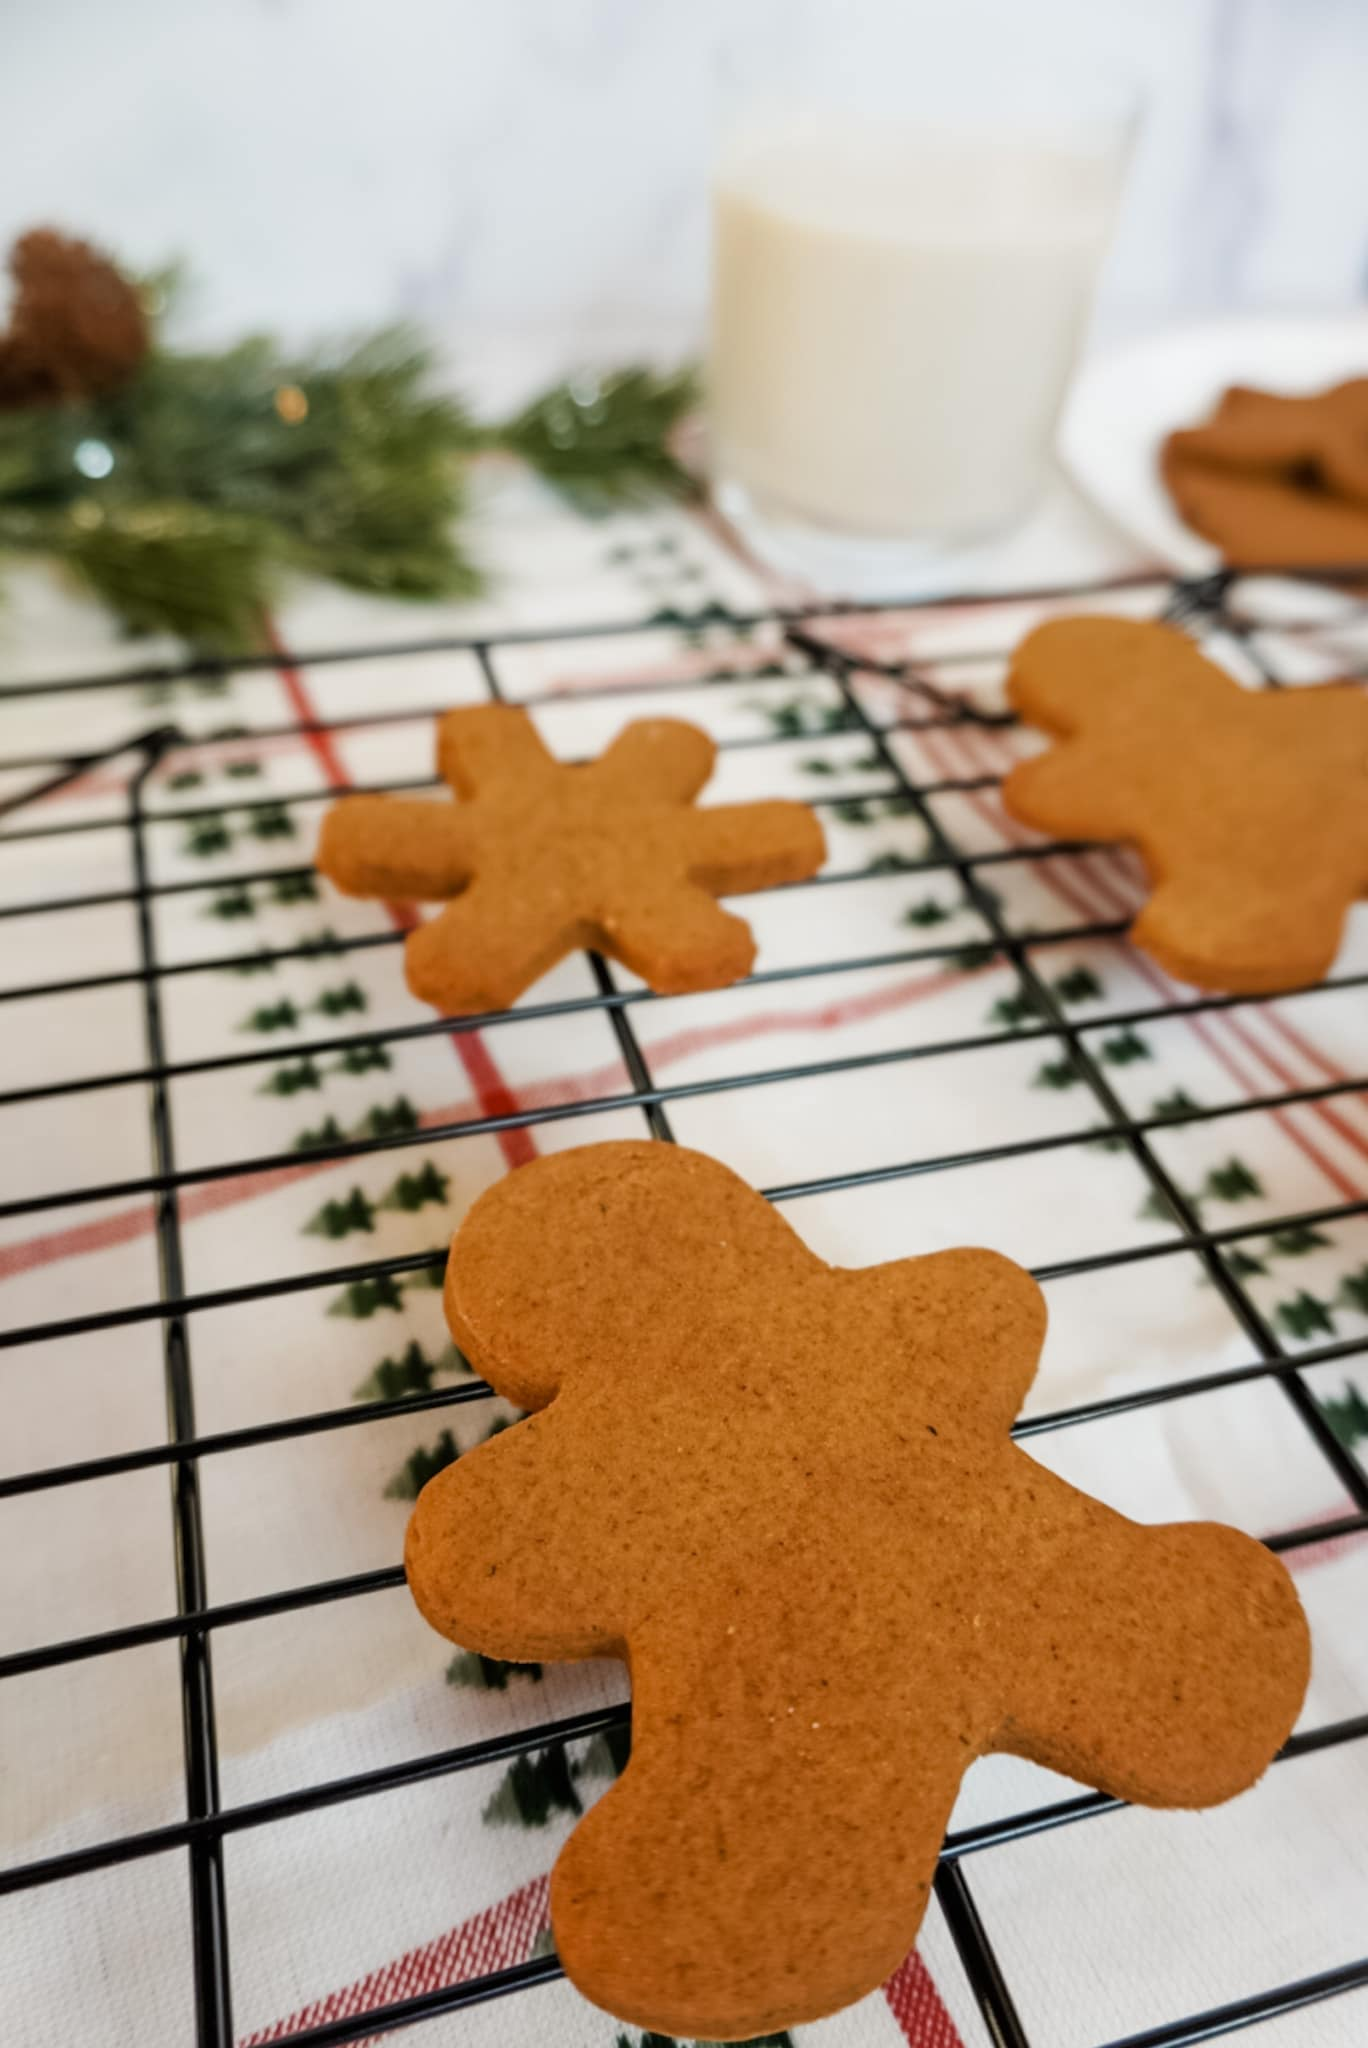 gingerbread cookies on a cooling tray